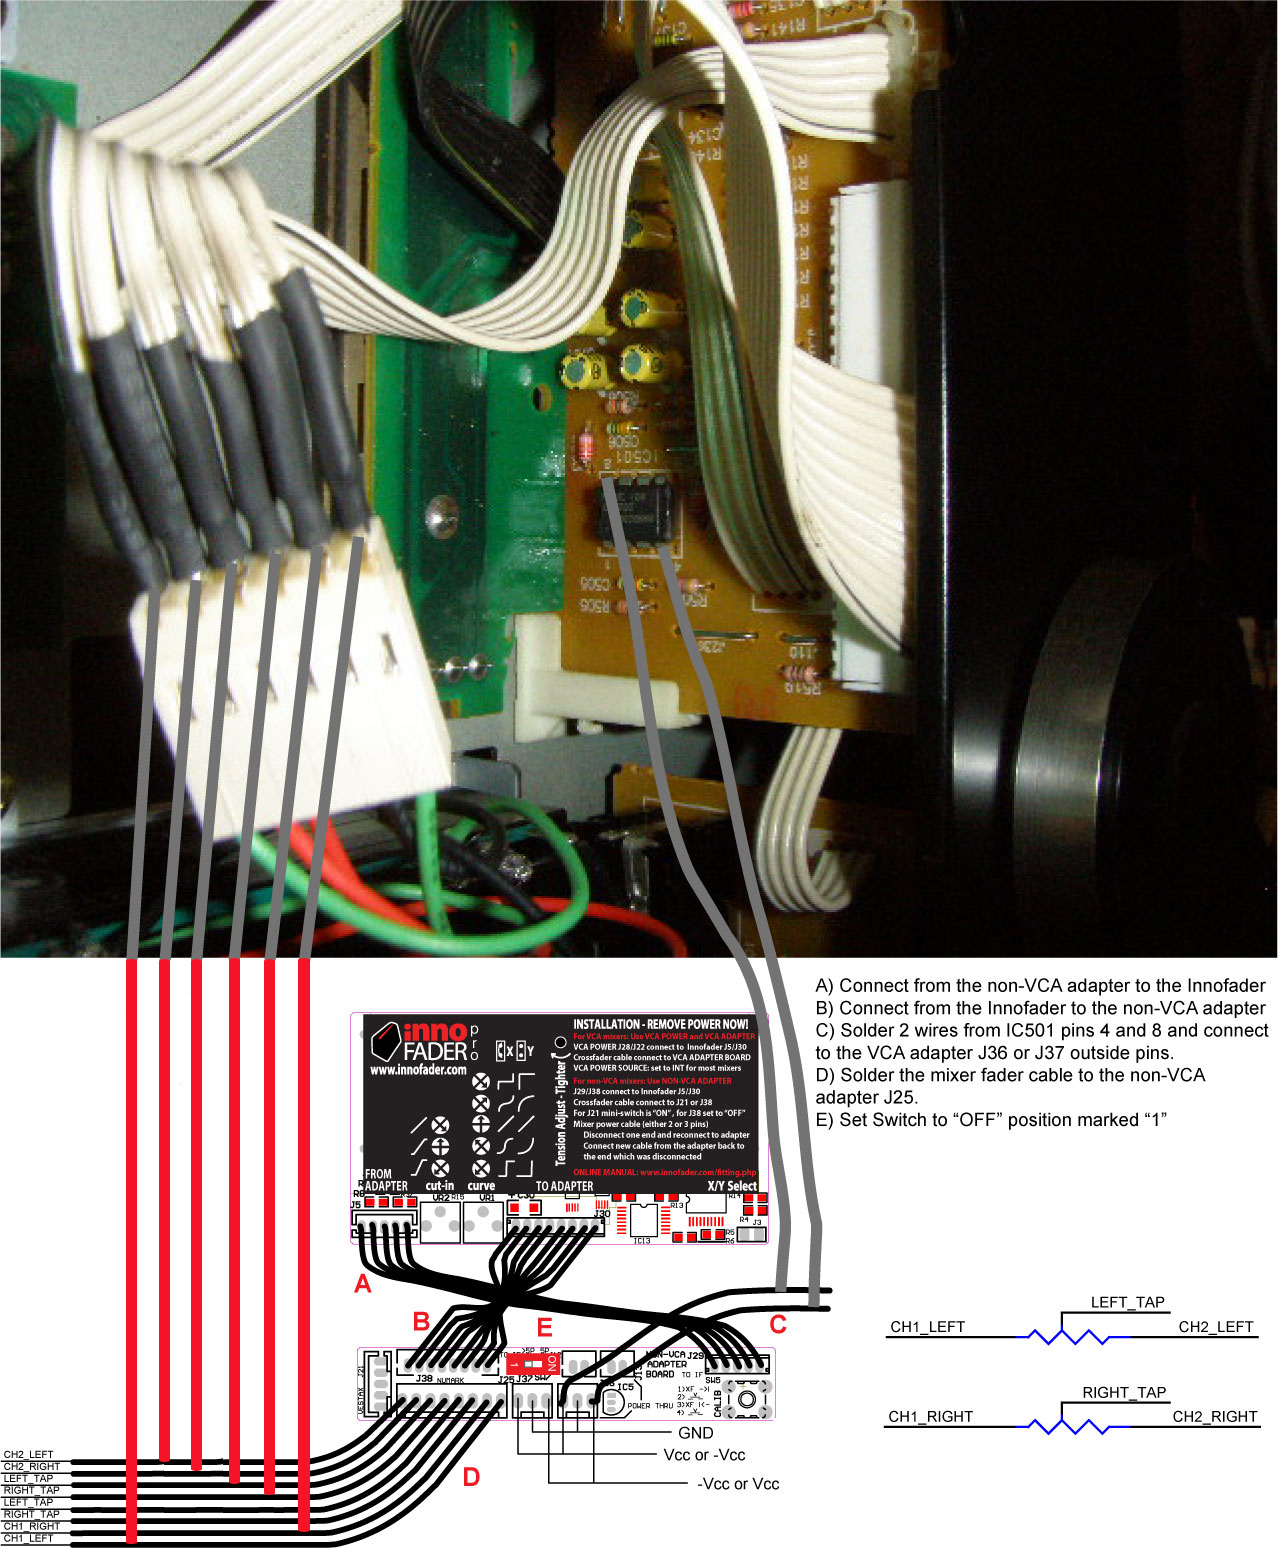 technic wiring harness best wiring librarytechnic wiring harness